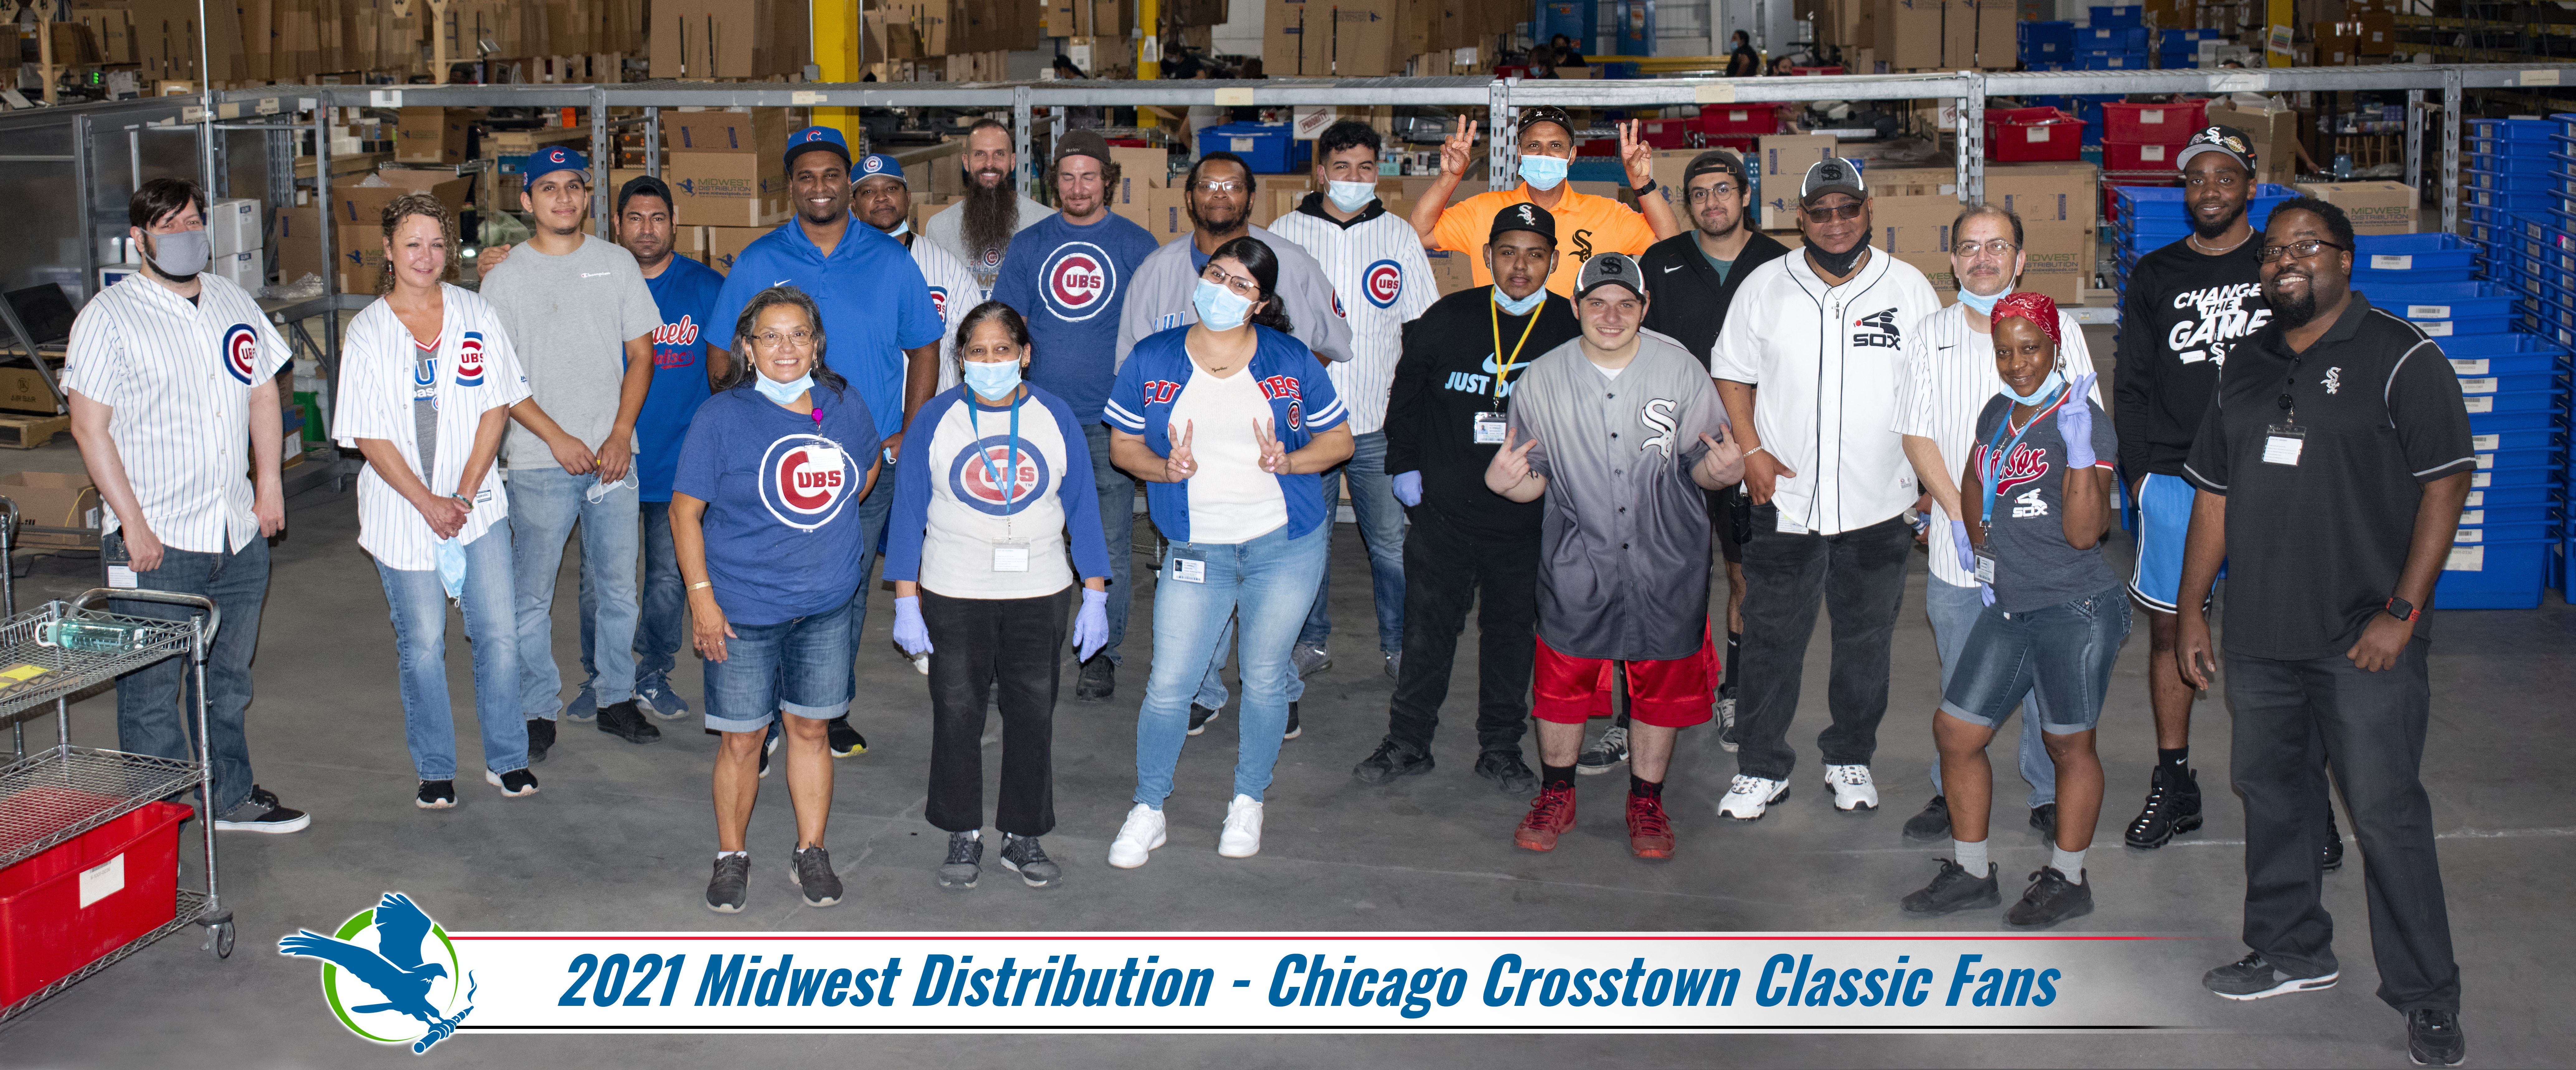 2021 Chicago Crosstown Classic Fans